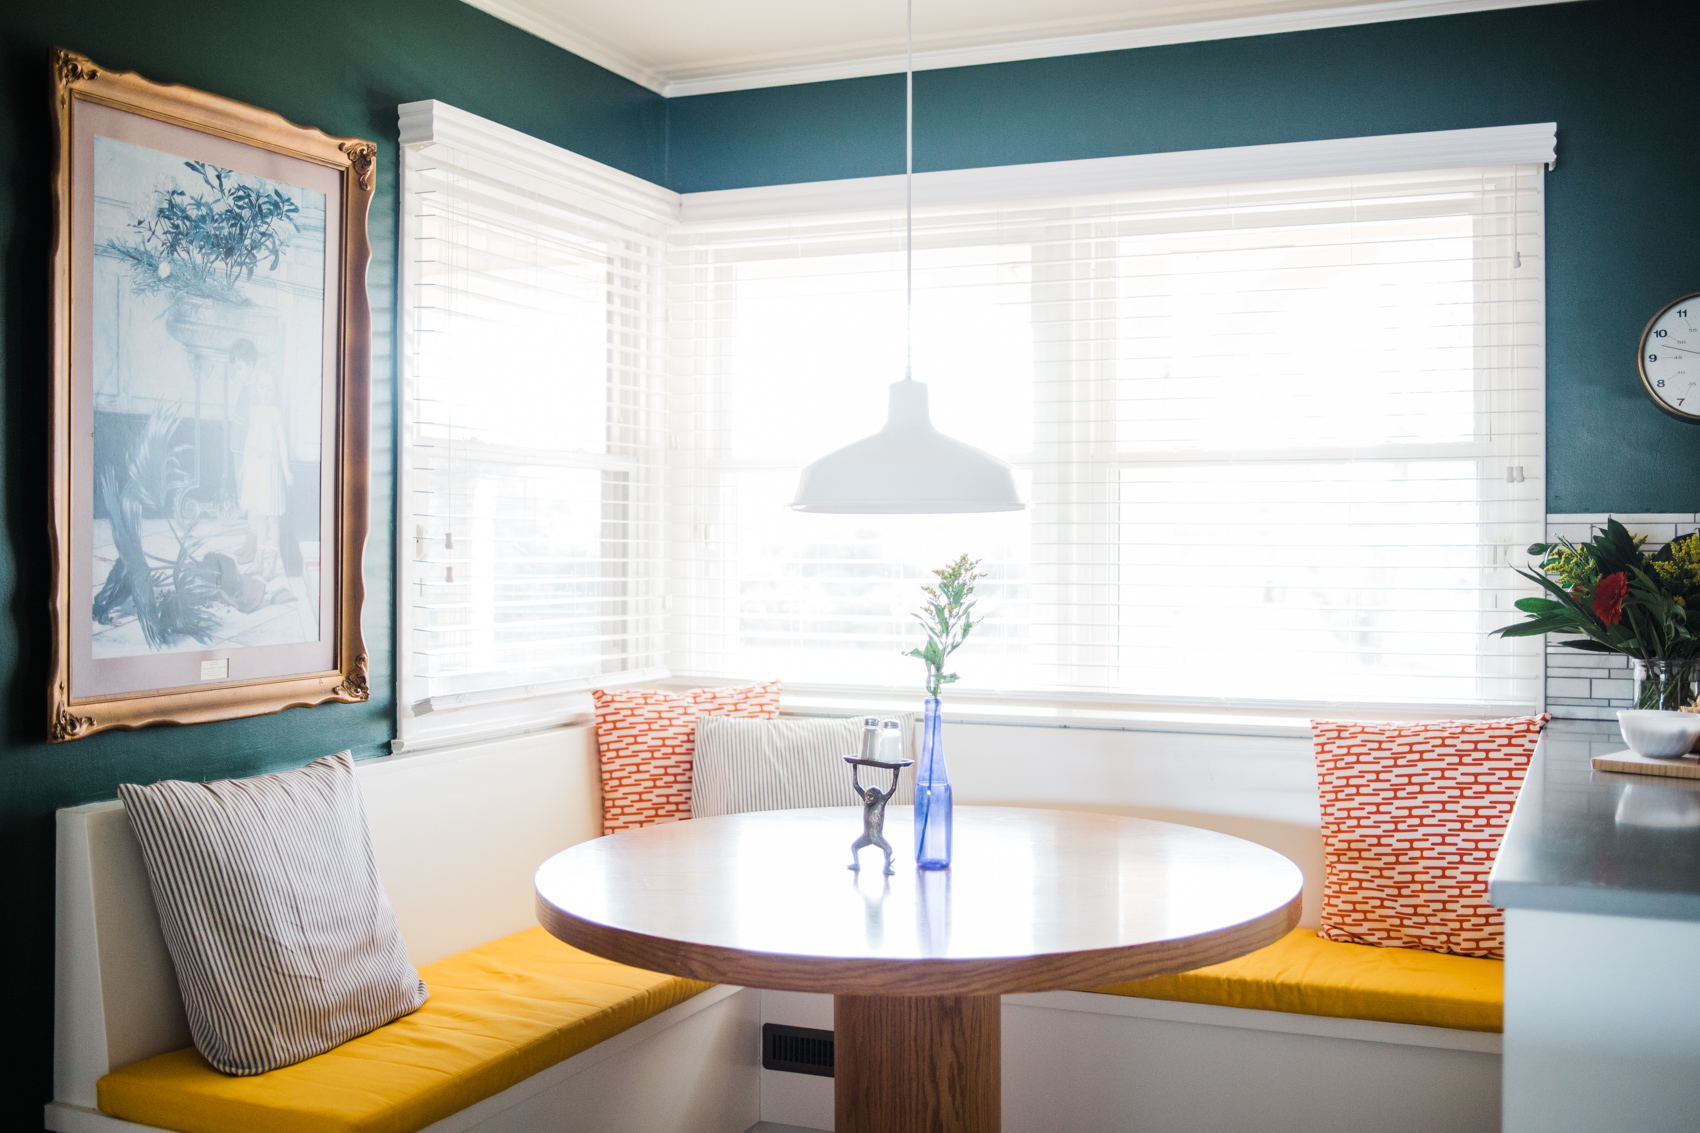 Creating A Built In Banquette Or Bench Seating For A Kitchen Breakfast Nook Retro Den Vintage Furniture And Homewares